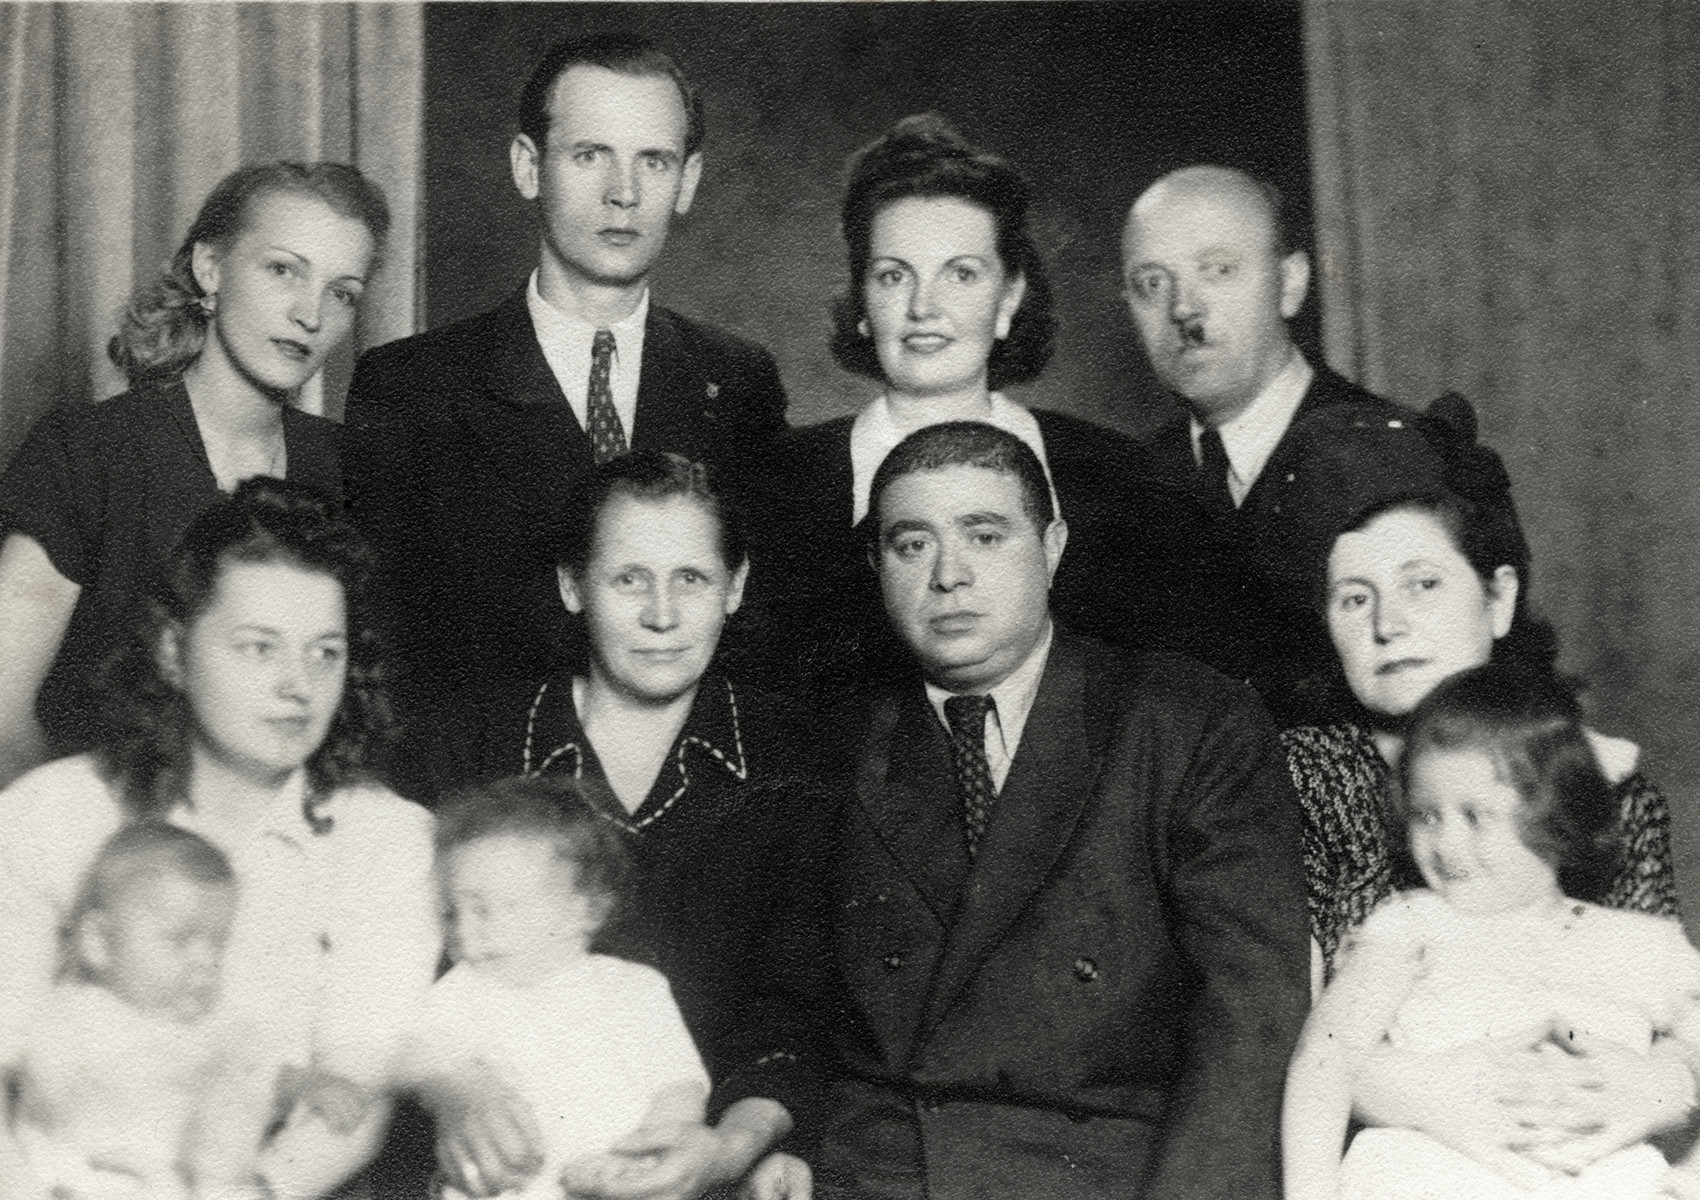 Group portrait of the Ecksteins (a Slovak Jewish family), with the Pajanko family, the Slovak family who hid their daughter.  Jonas Eckstein is seated second from the right.  Gerta Eckstein is sitting on her mother's lap on the far right.  Maja Pajanko is seated on the far left.  Mrs. Pajanko is in the center and Mr. Pajanko is standing behind Valerie Eckstein.